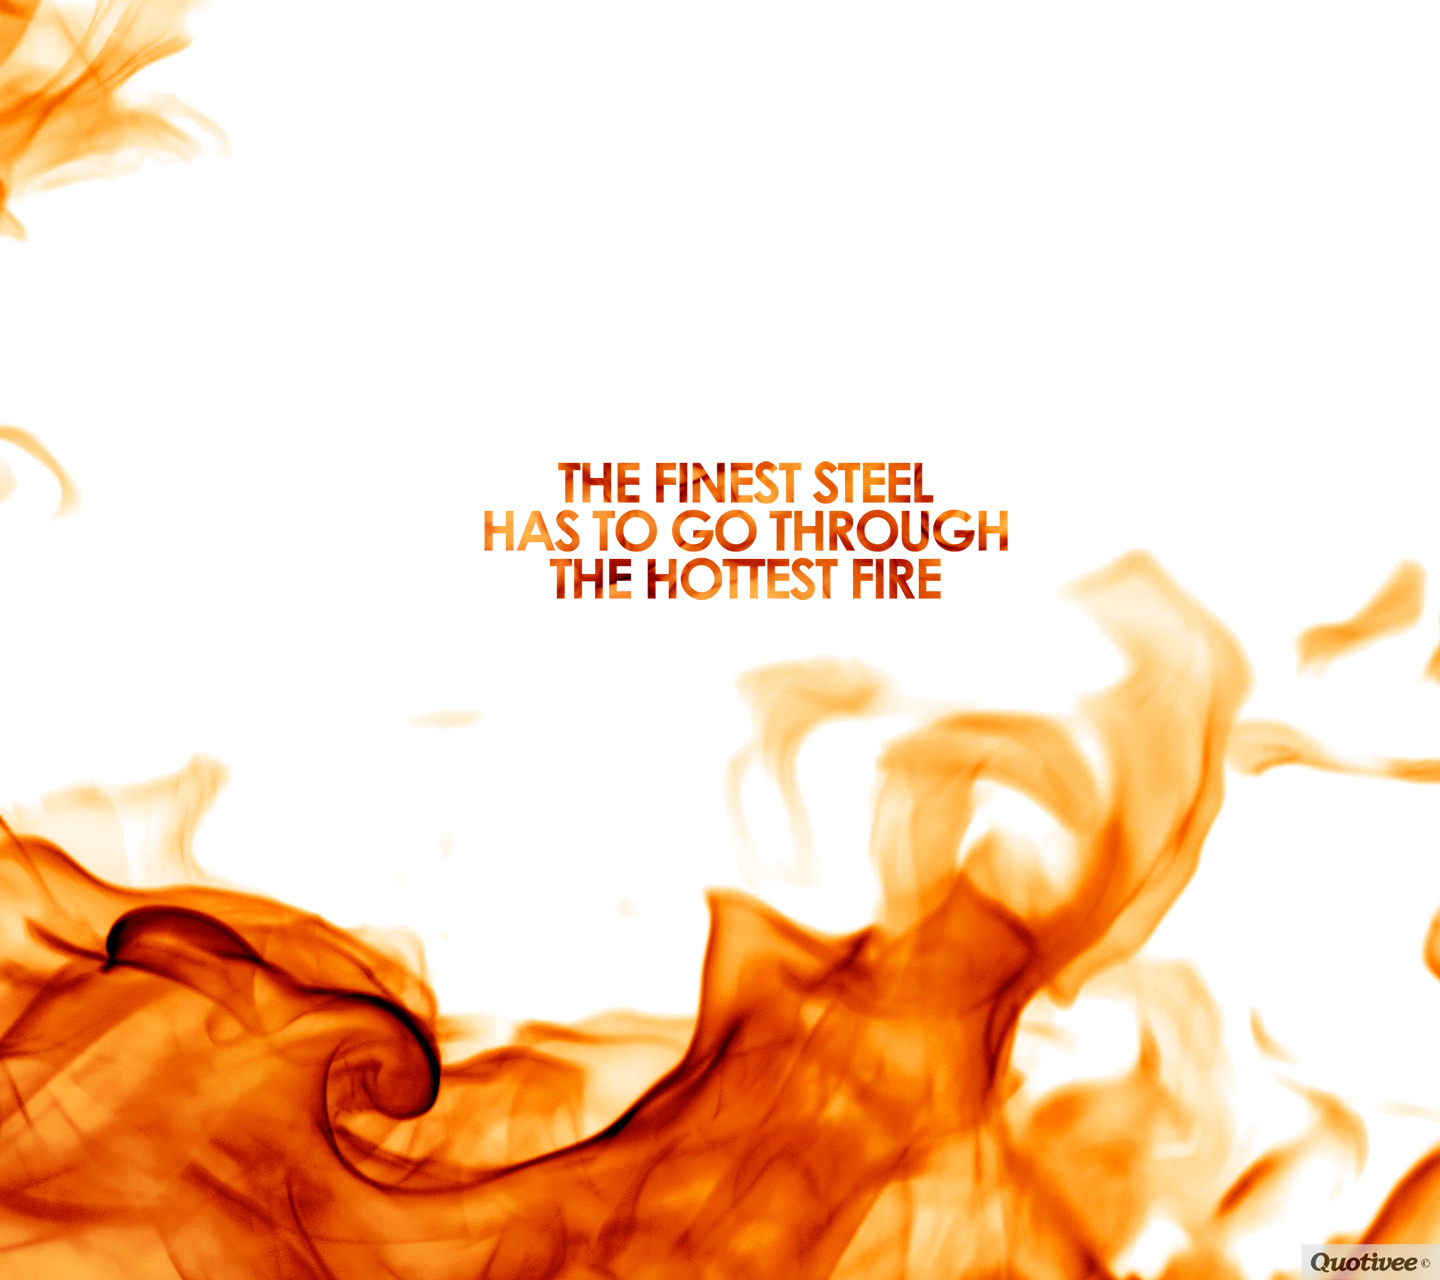 The Hottest Fire - Inspirational Quotes